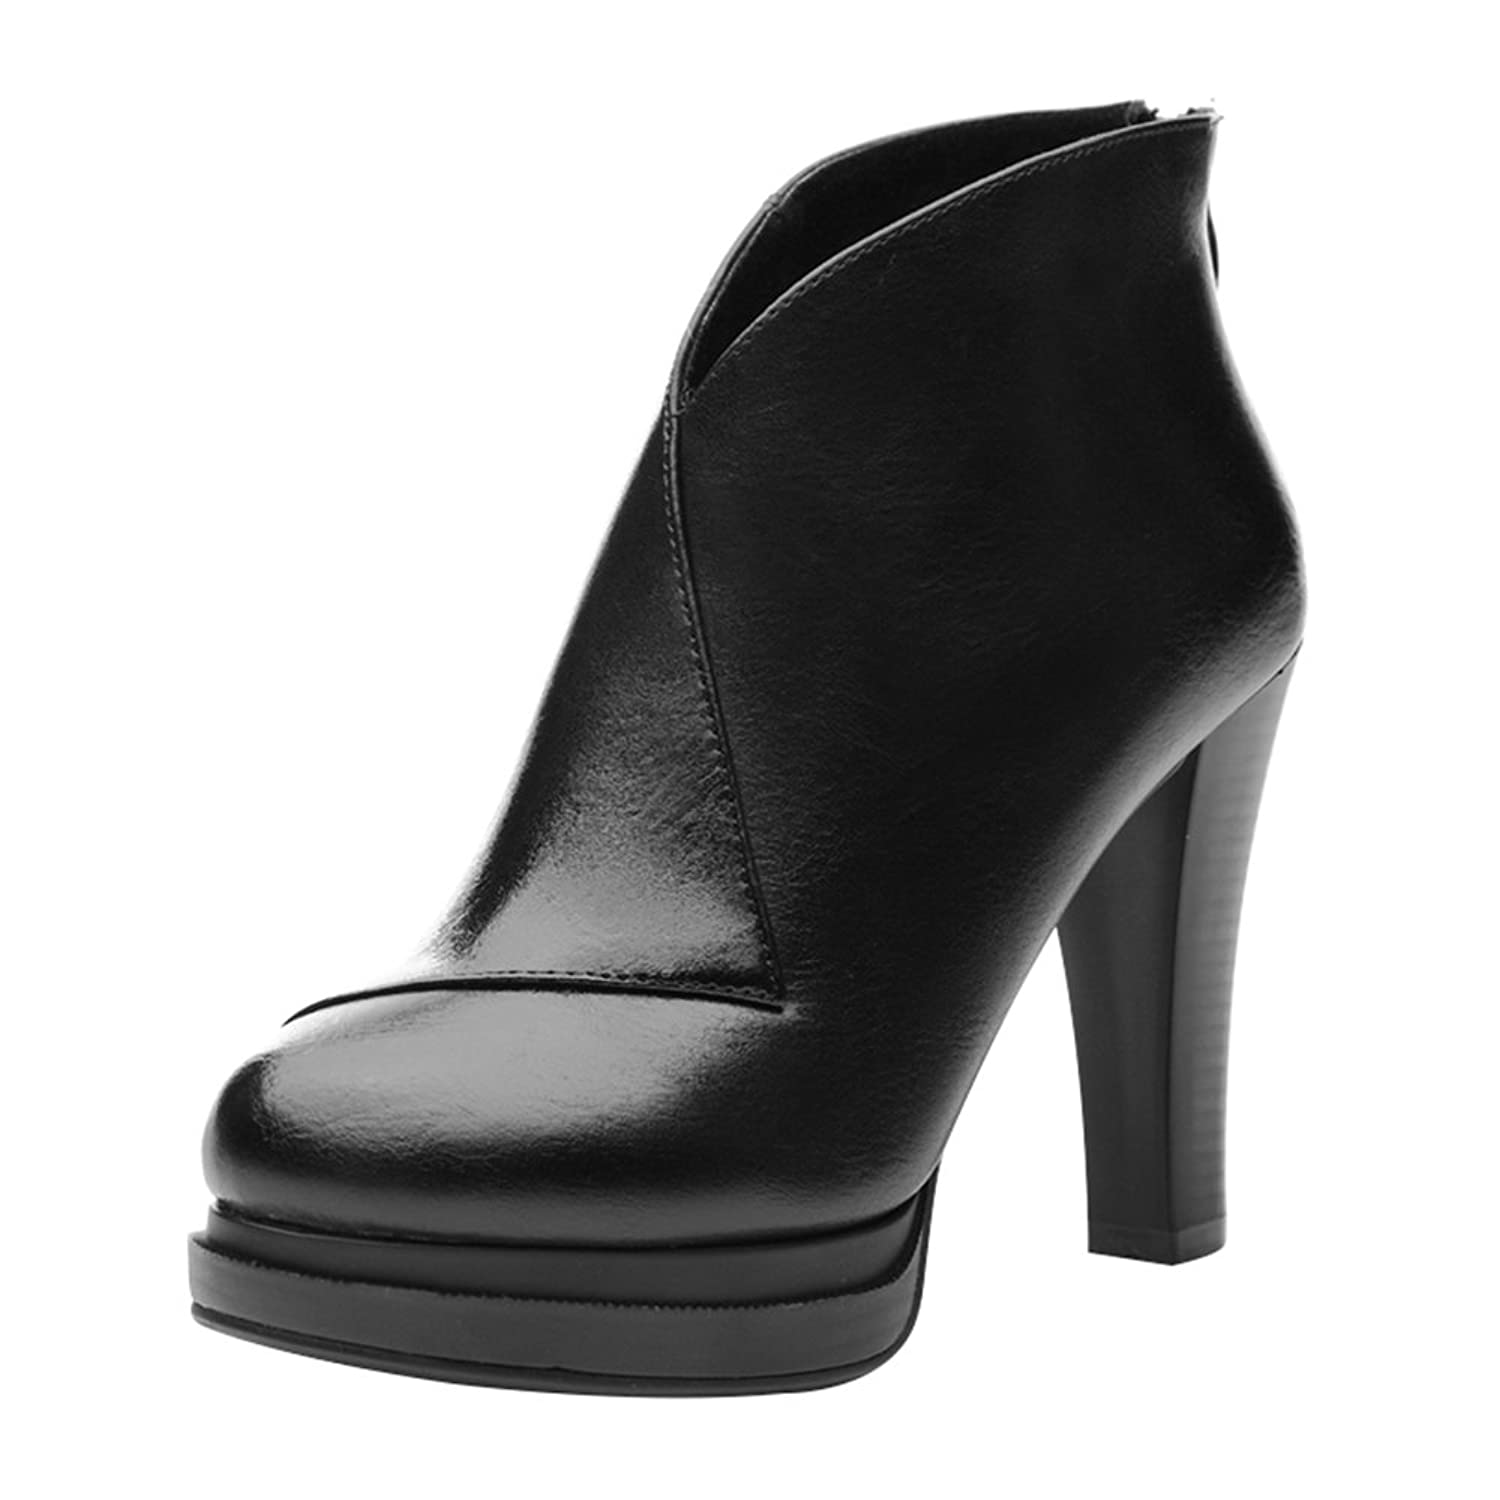 Passionow Women's Fashion Round Toe Fur Lined Block Heel Back Zipper Platform PU Leather Ankle Booties